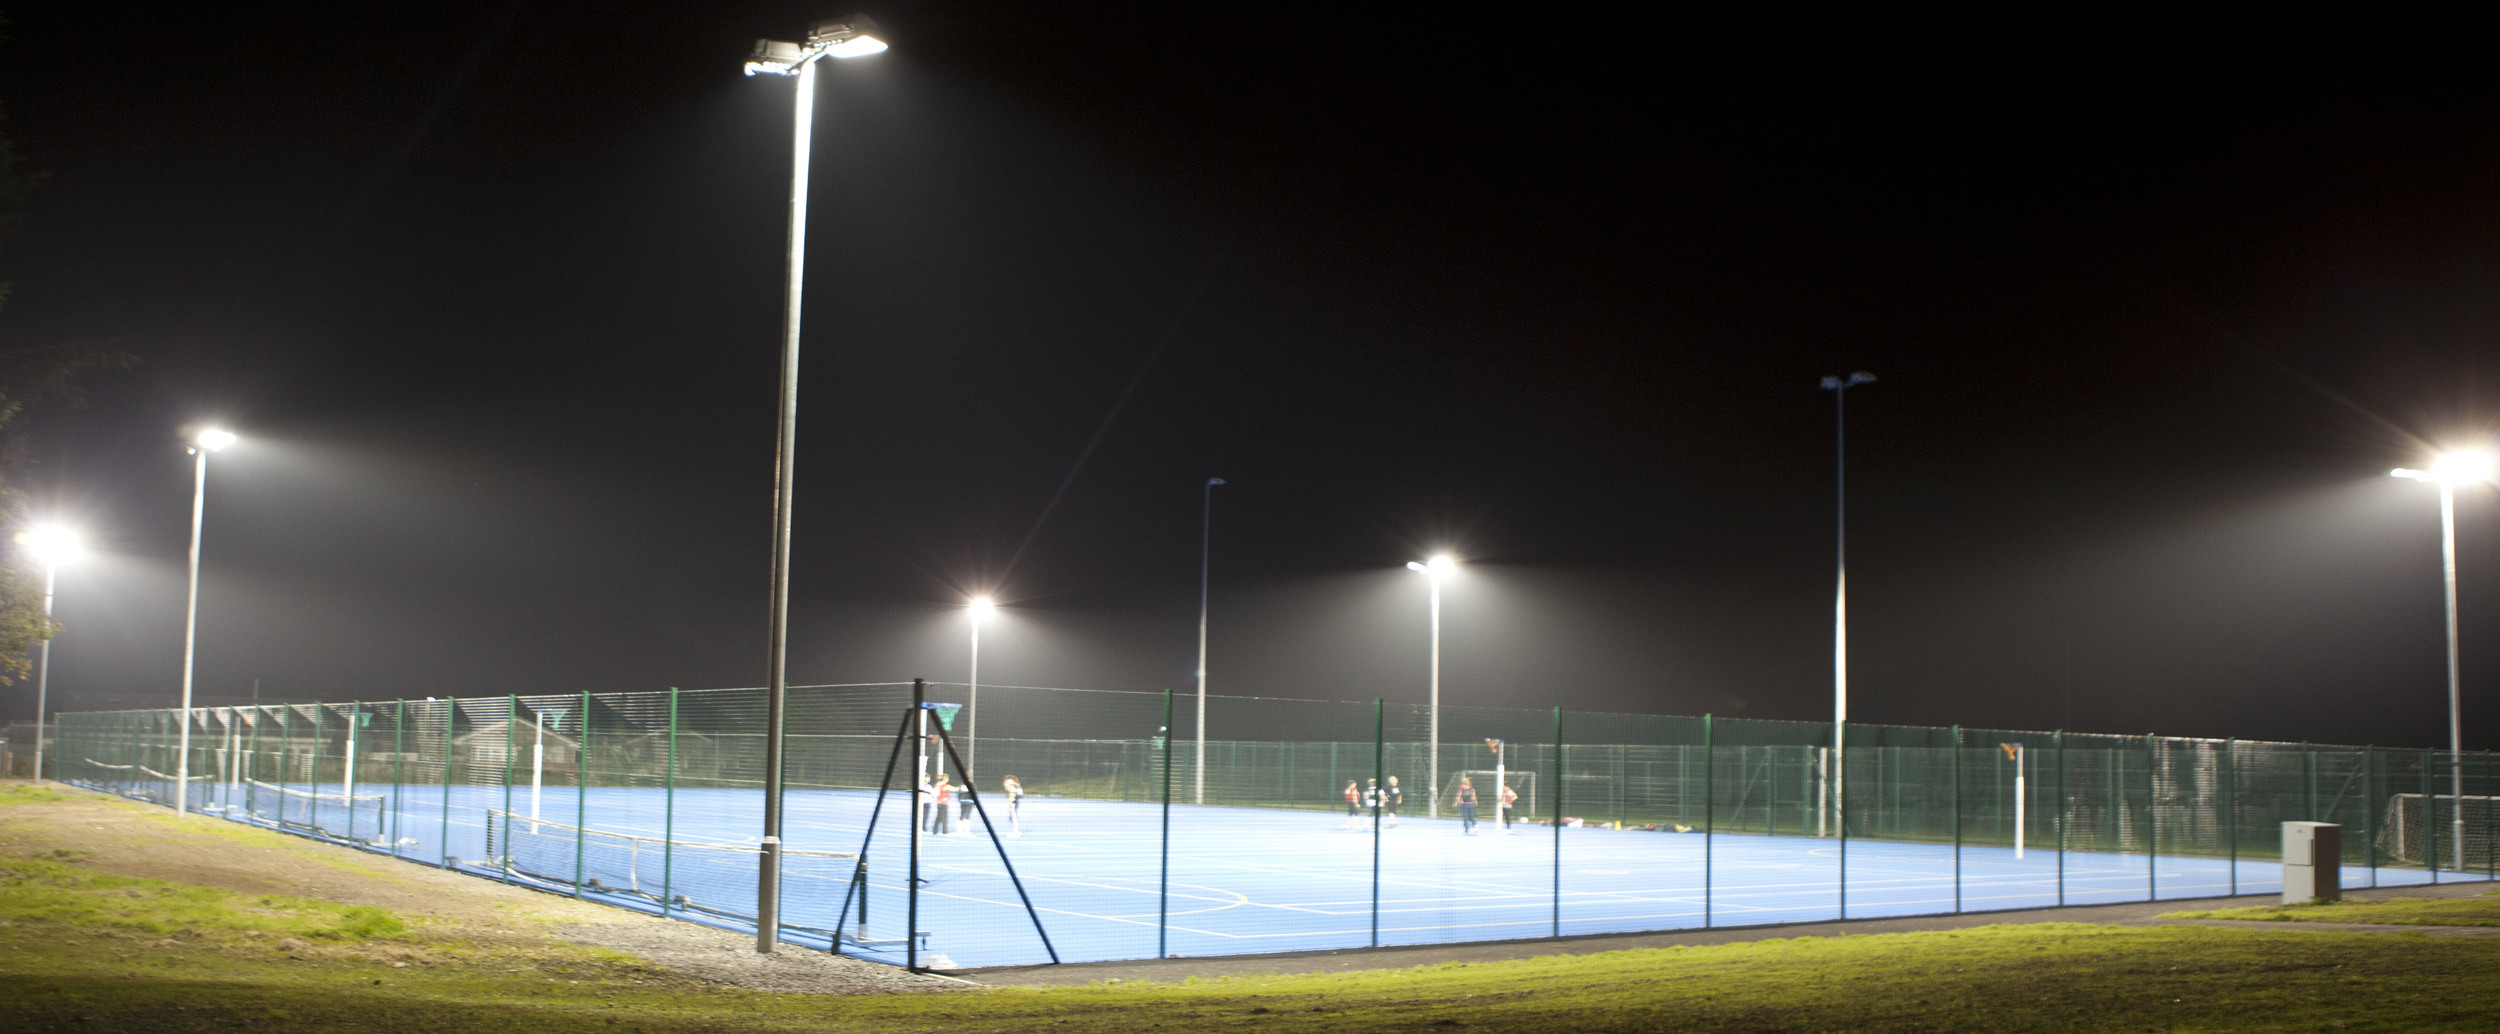 4 floodlit Netball courts and Tennis courts